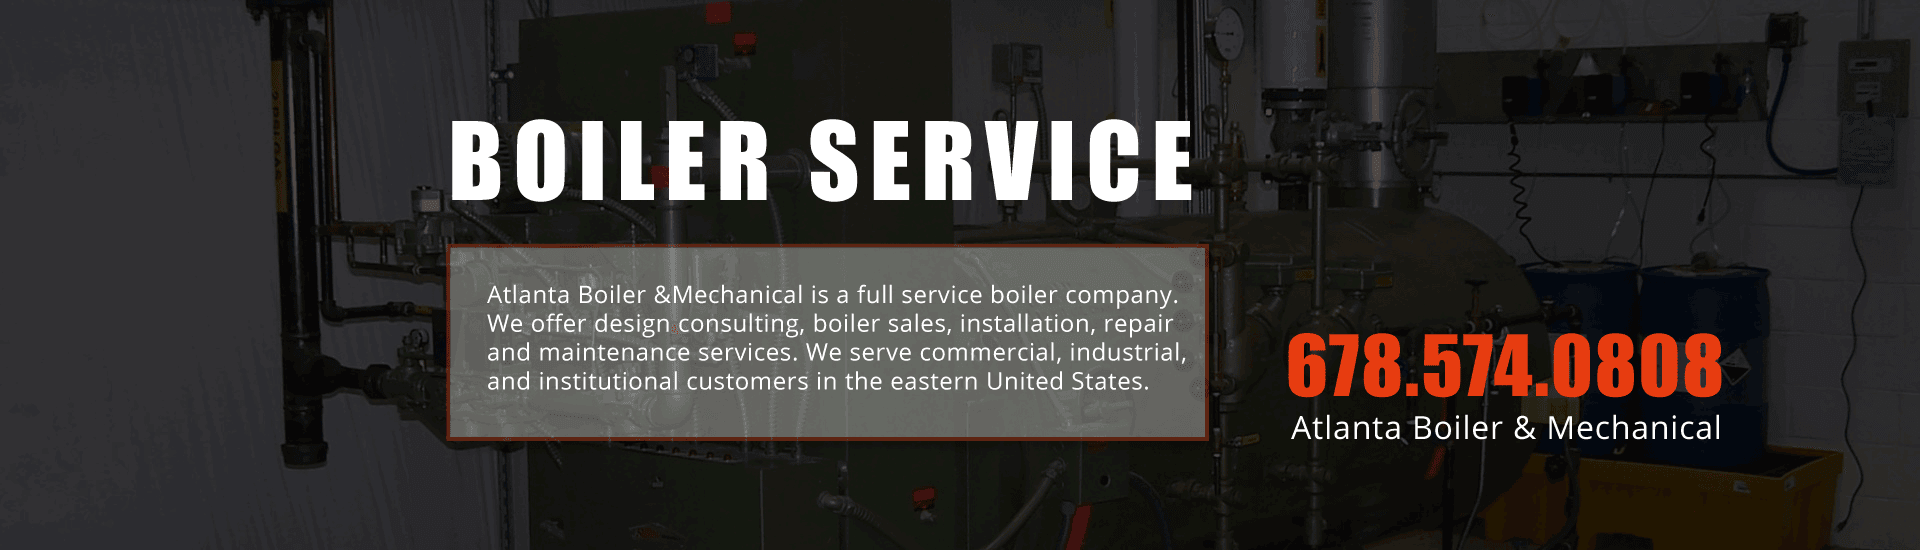 Atlanta Boiler & Mechanical is a full service boiler company. We offer design consulting, boiler sales, installation, repair, and maintenance services. We serve commercial, industrial, and institutional customers in the eastern United States.